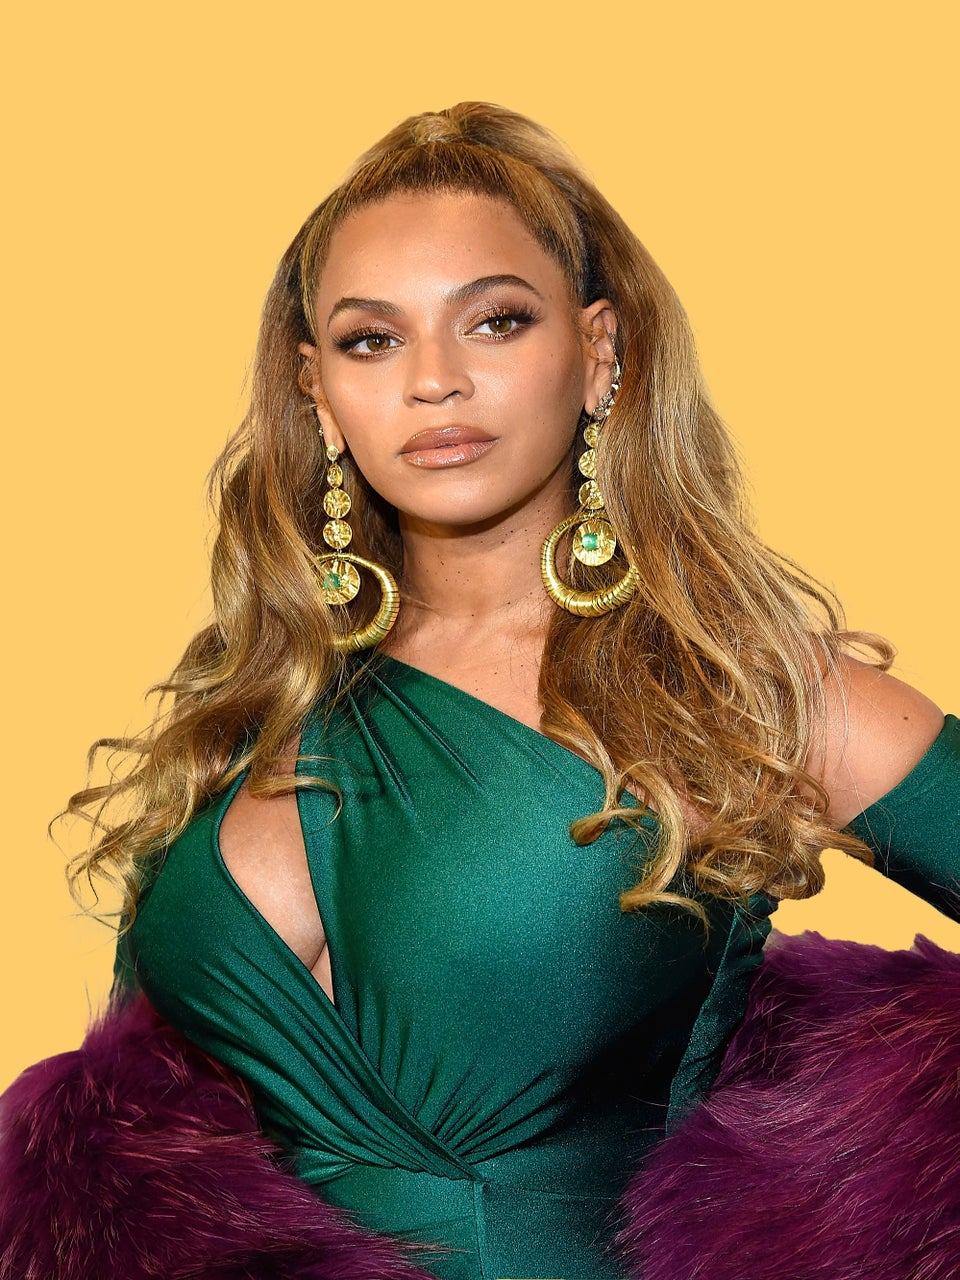 Beyonce Has Released A Line Of Christmas Sweaters And Ornaments